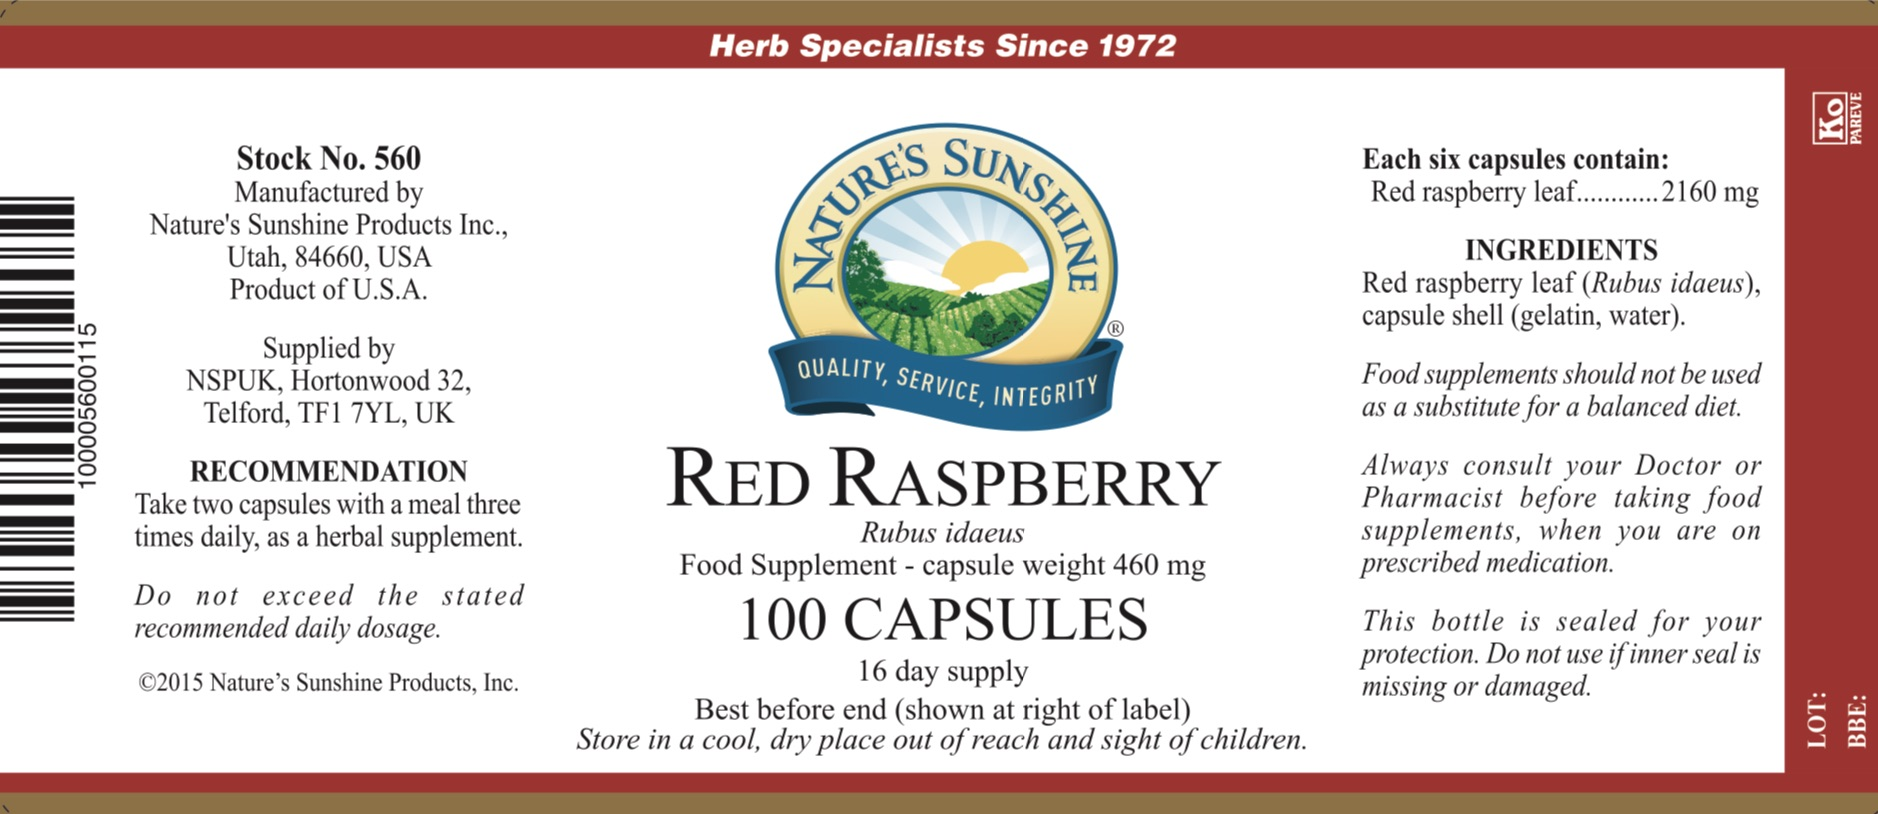 Nature's Sunshine - Red Raspberry - Label